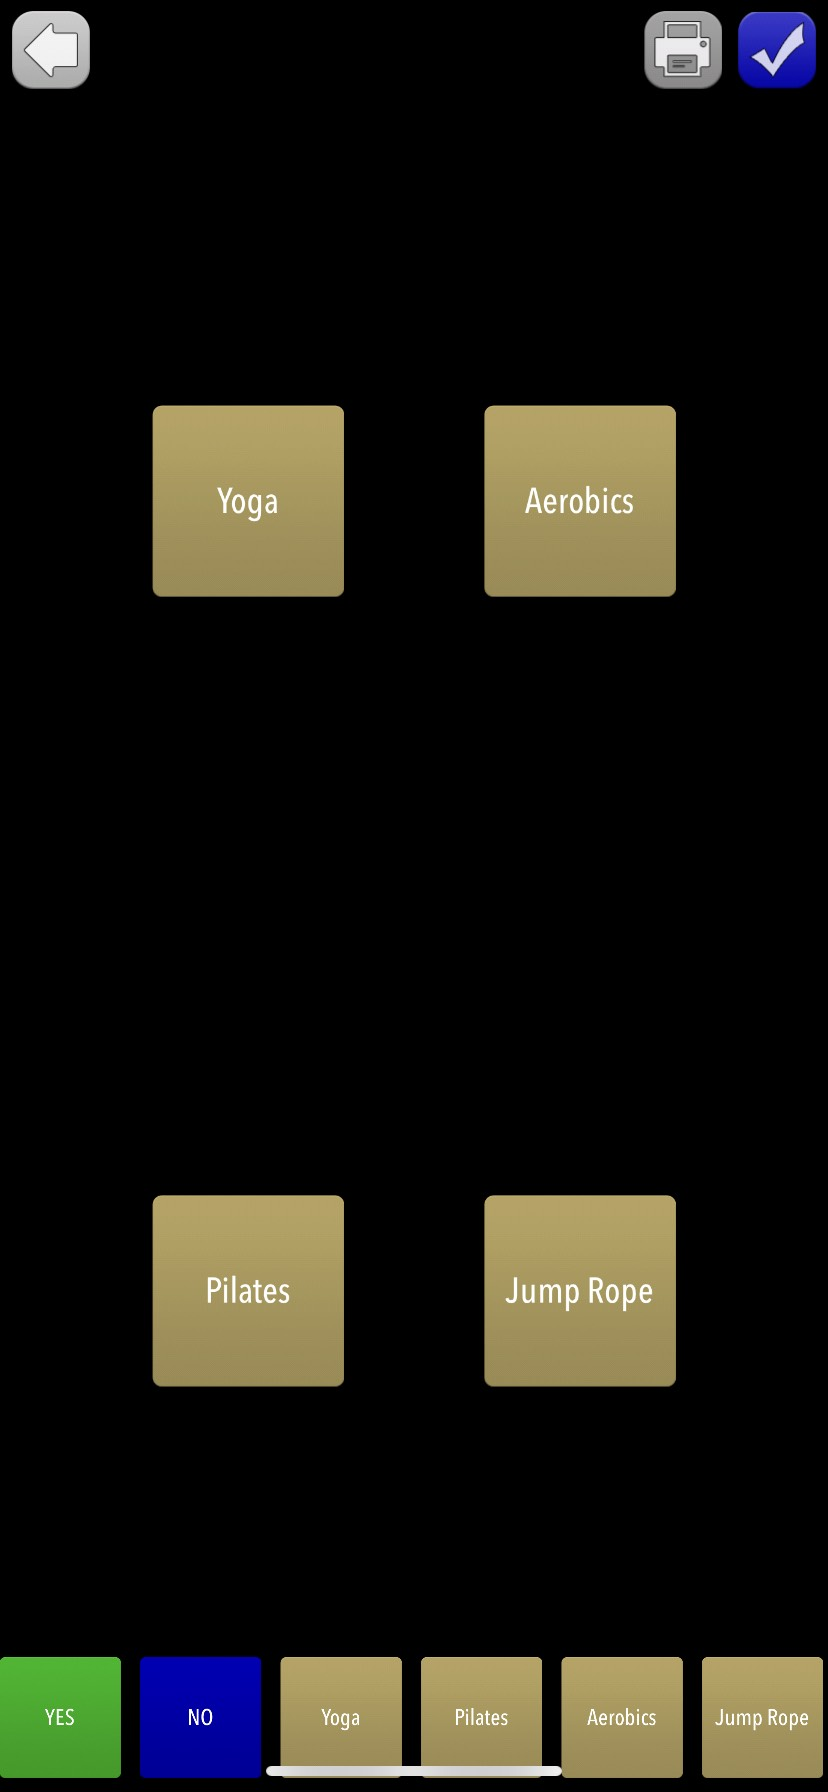 Screenshot of customized board with Yoga, Aerobics, Pilates, and Jump rope buttons and smaller buttons on the bottom of the screen: Yes, No, Yoga, Pilates, Aerobics and Jump Rope.